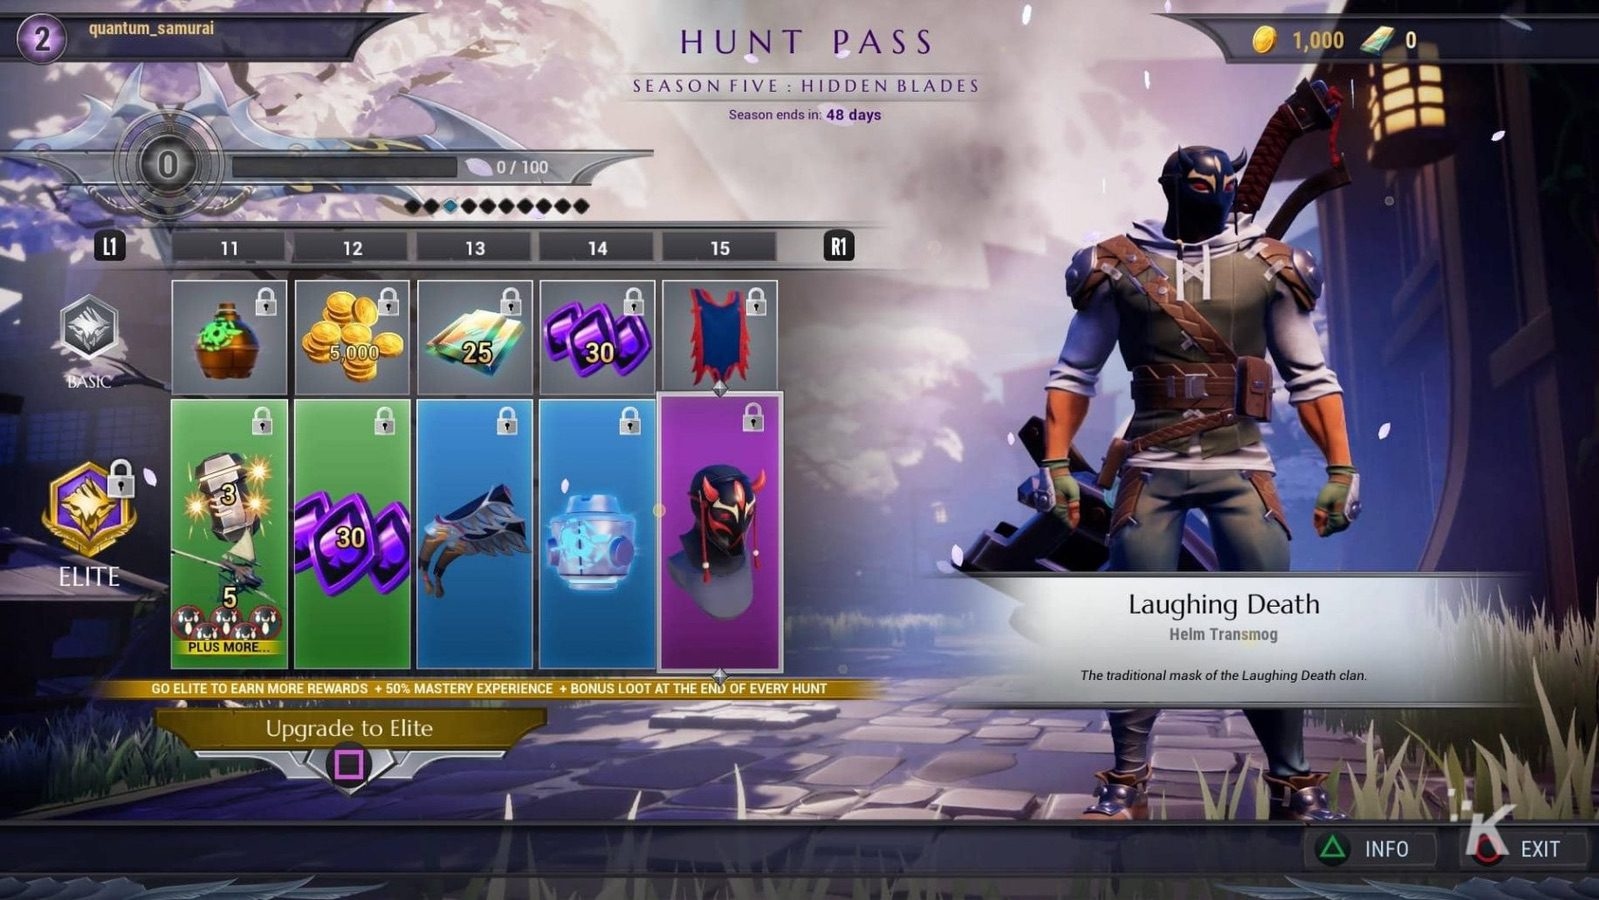 hunt pass showing different items you can earn